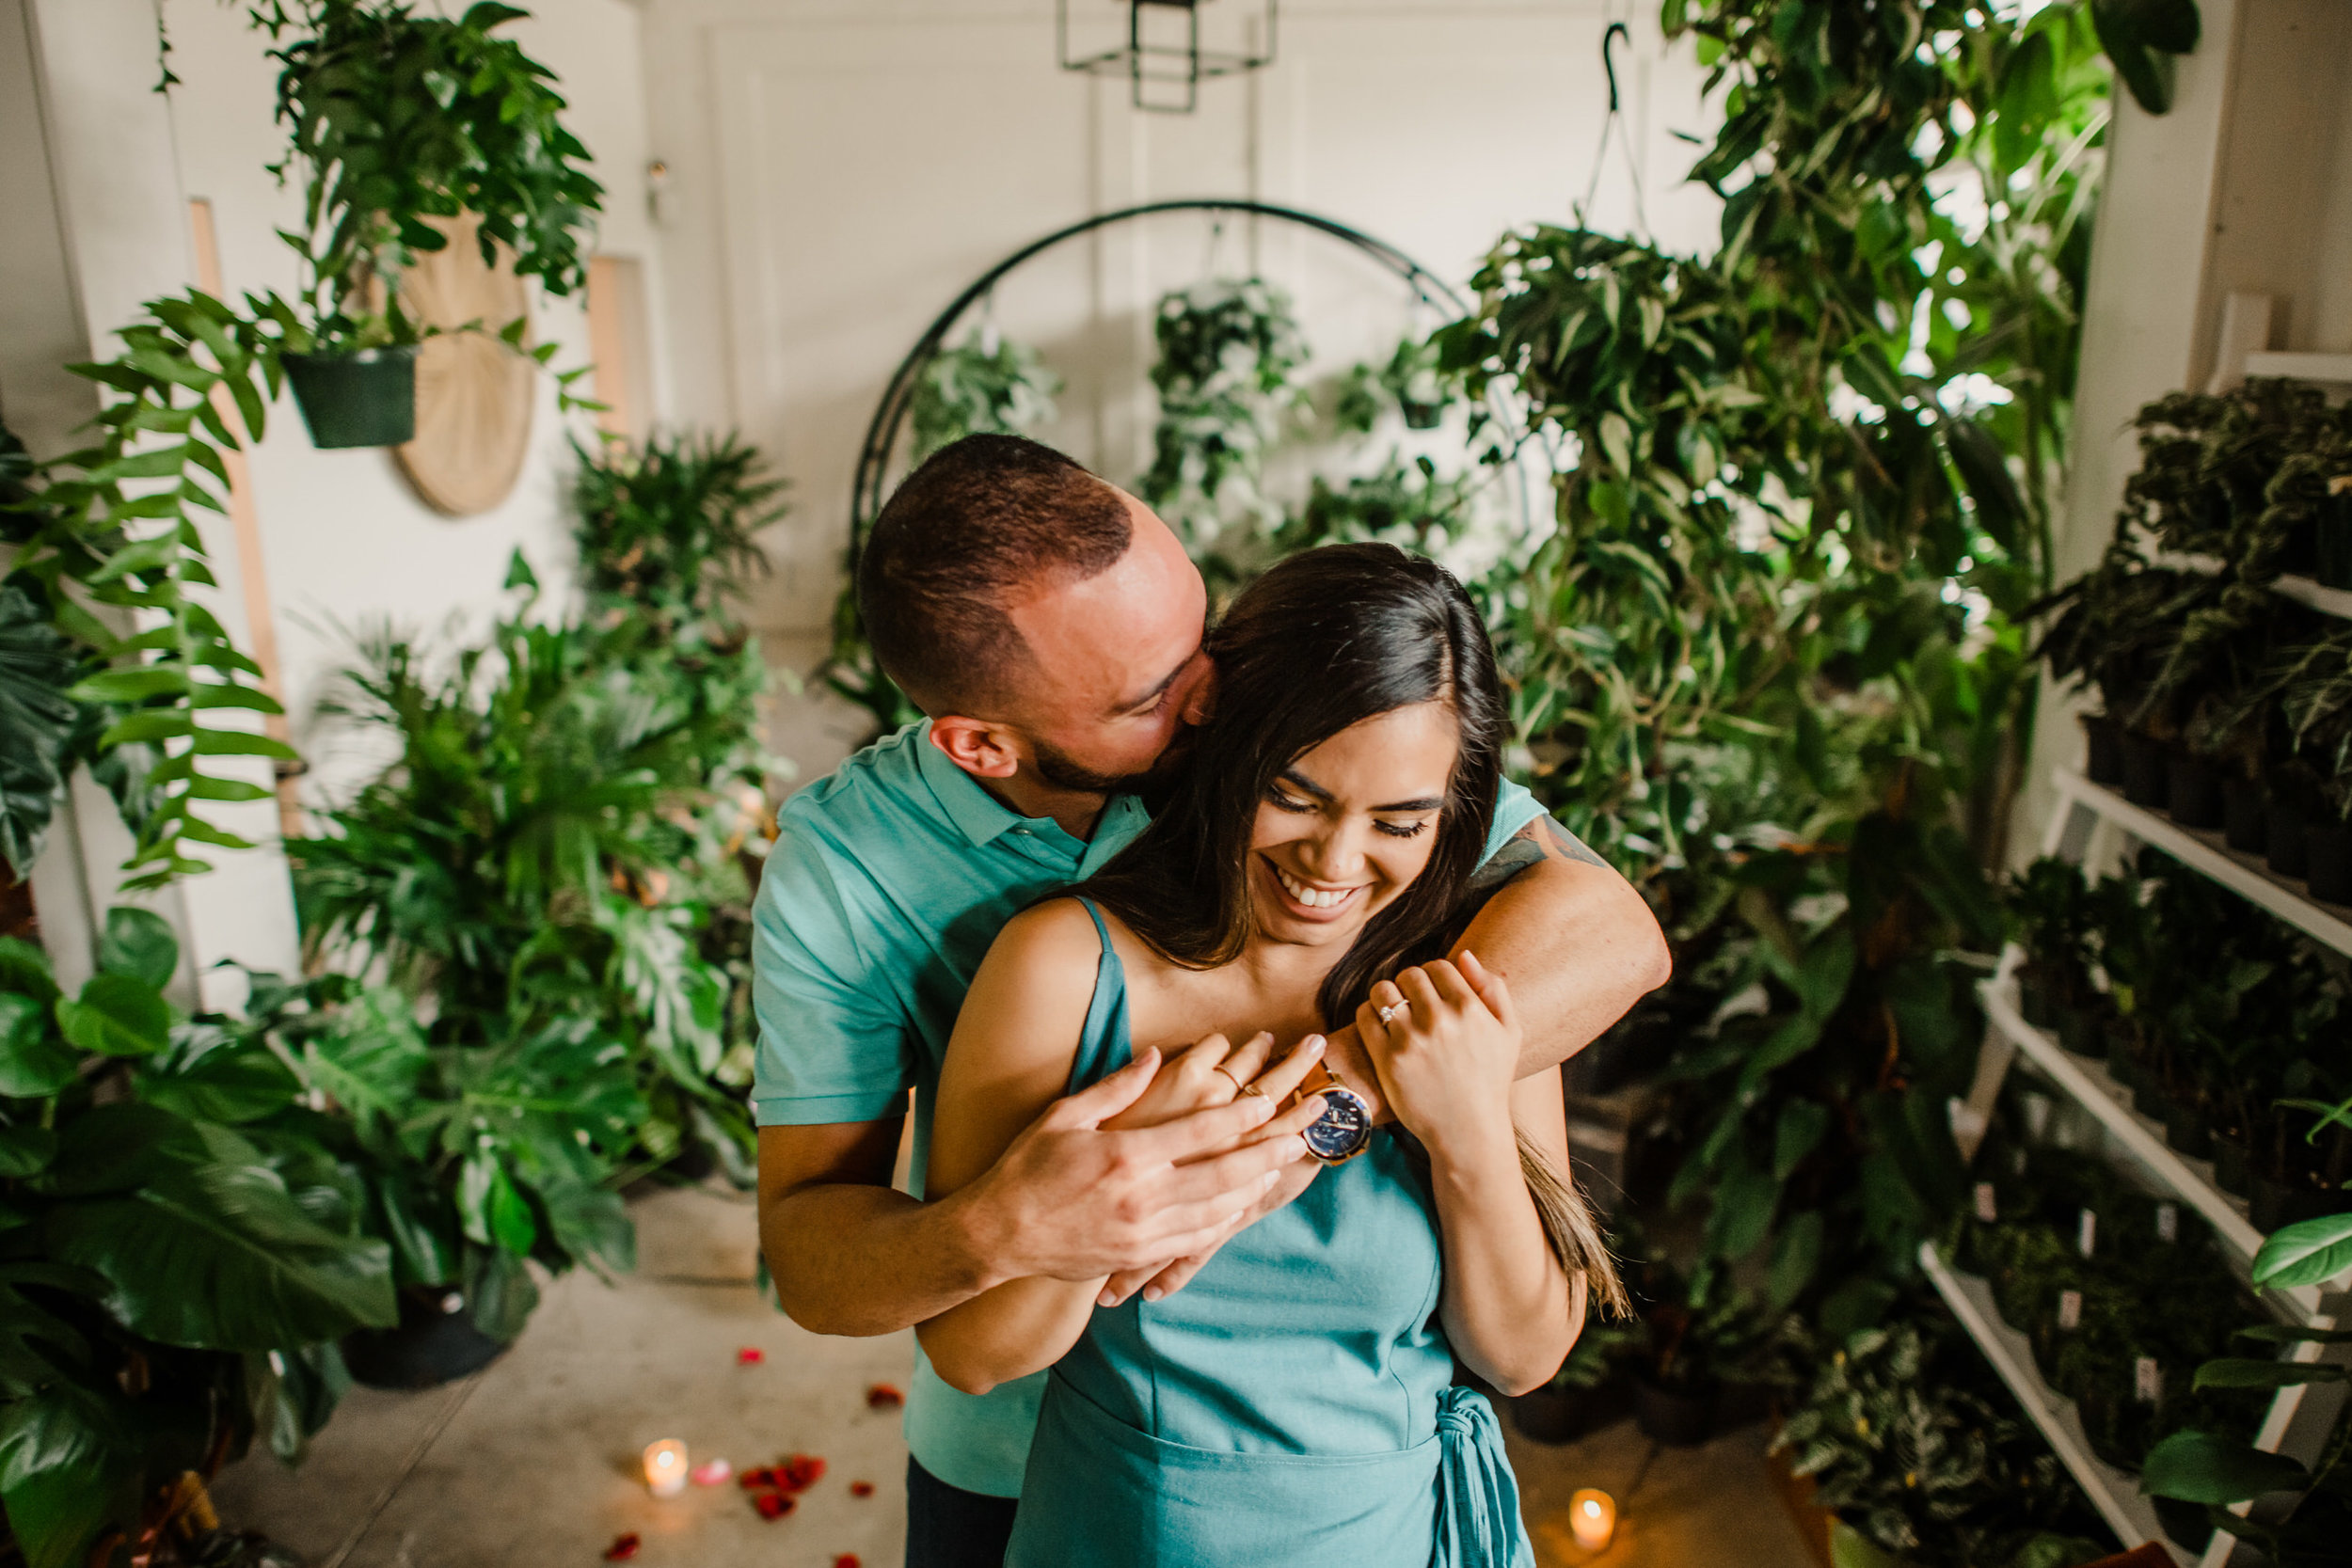 Valeria-Jonathan-Fancy-Free-Nursery-Tampa-Florida-Proposal-125.jpg